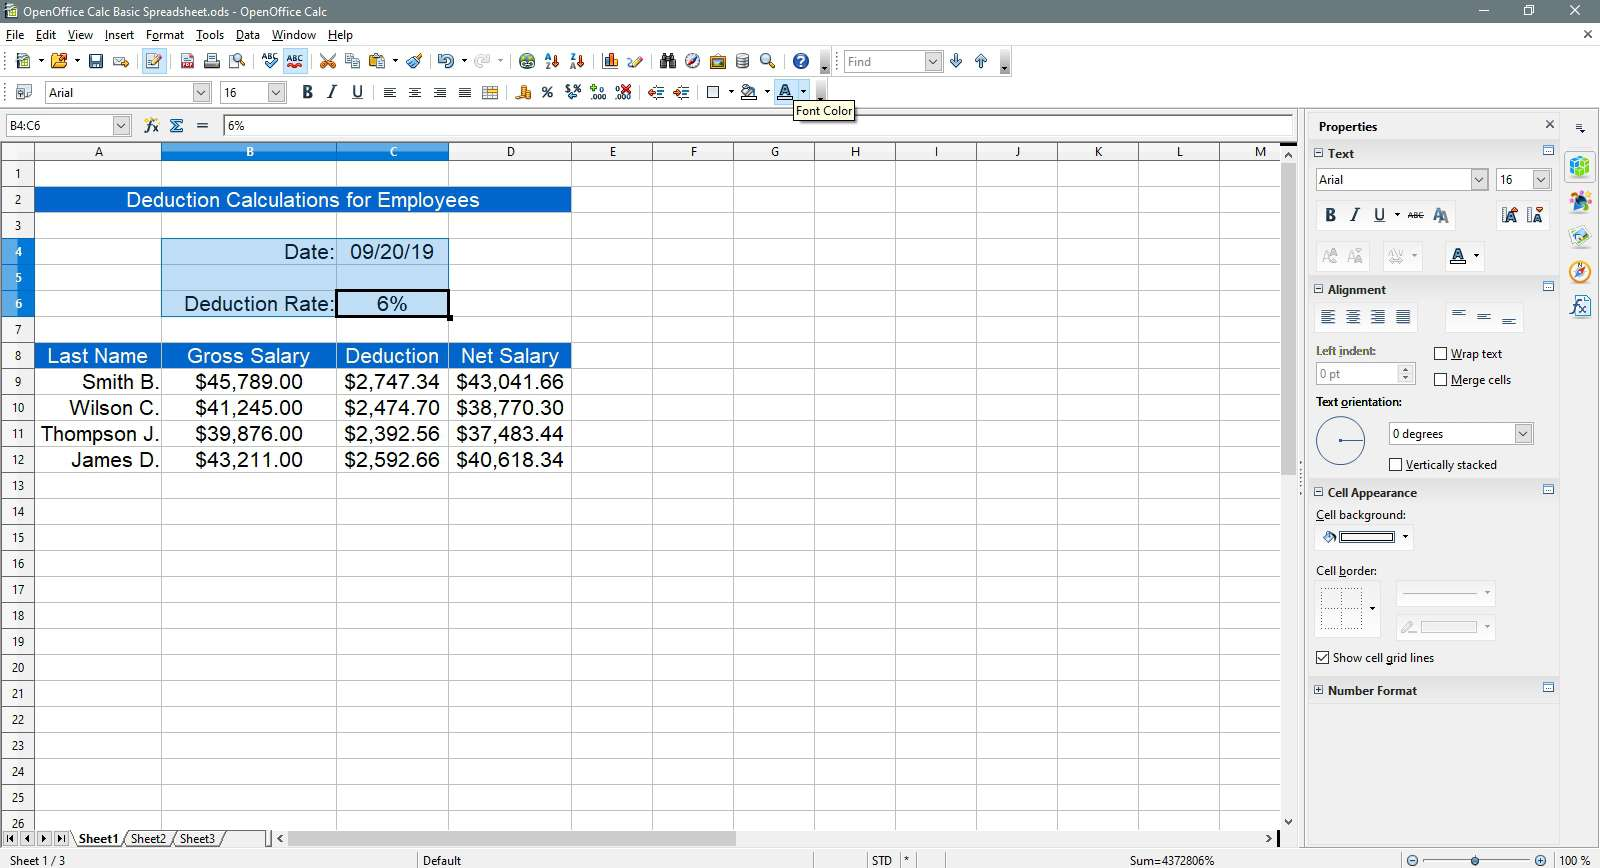 Cells selected to change the font color in OpenOffice Calc.